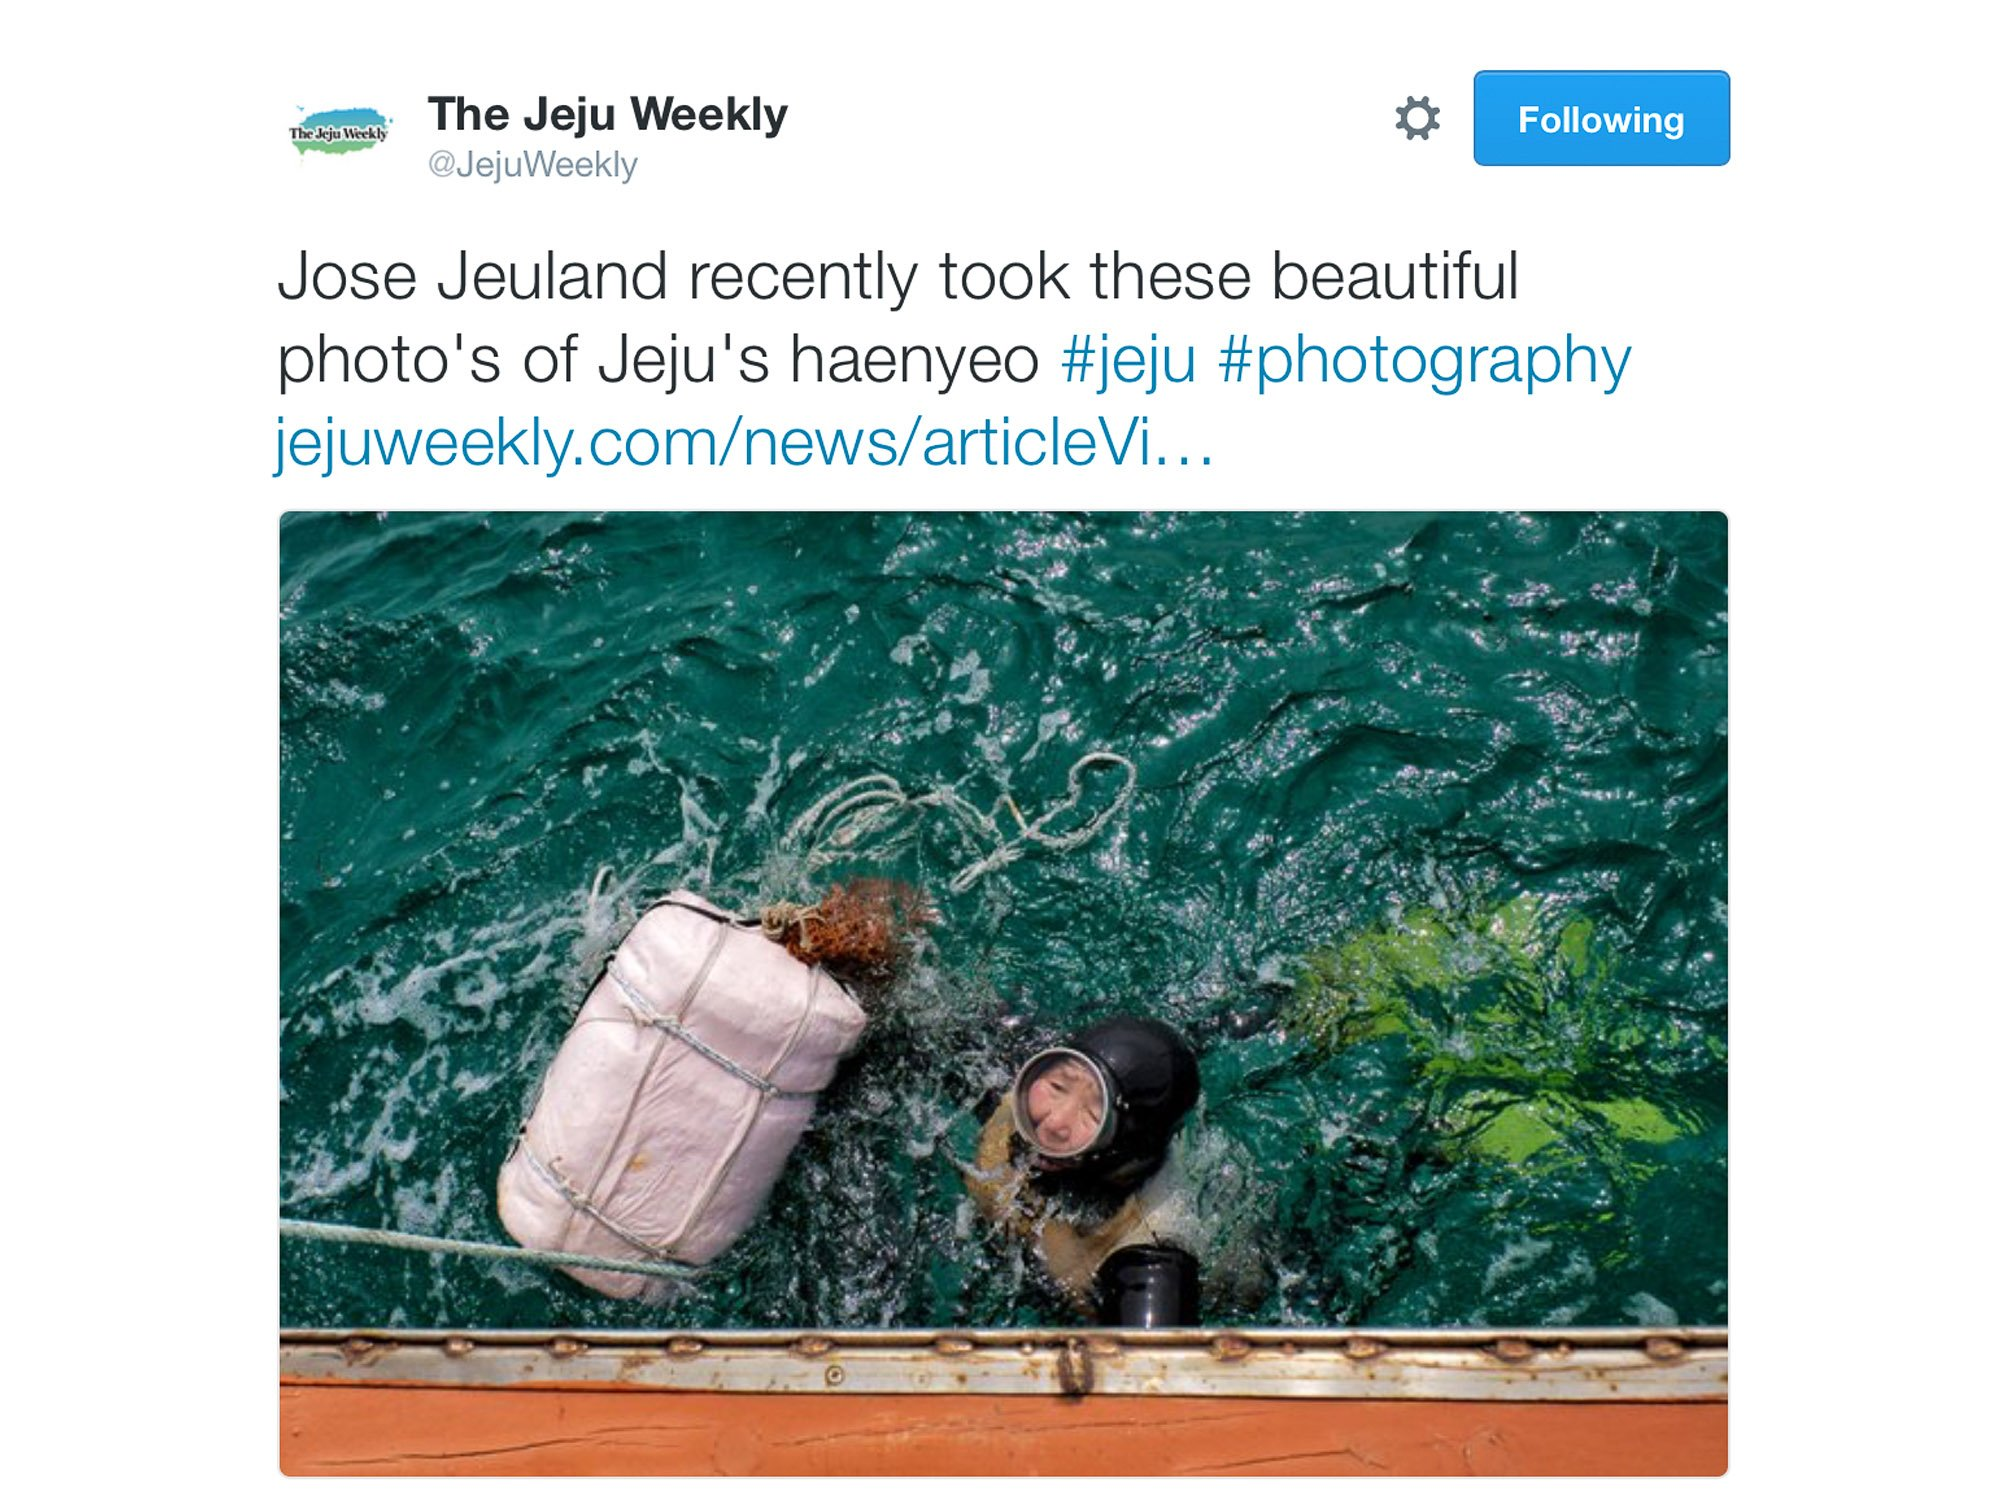 Jose Jeuland JeJu Weekly Haenyeo Article Photographer Triathlete newspaper twitter